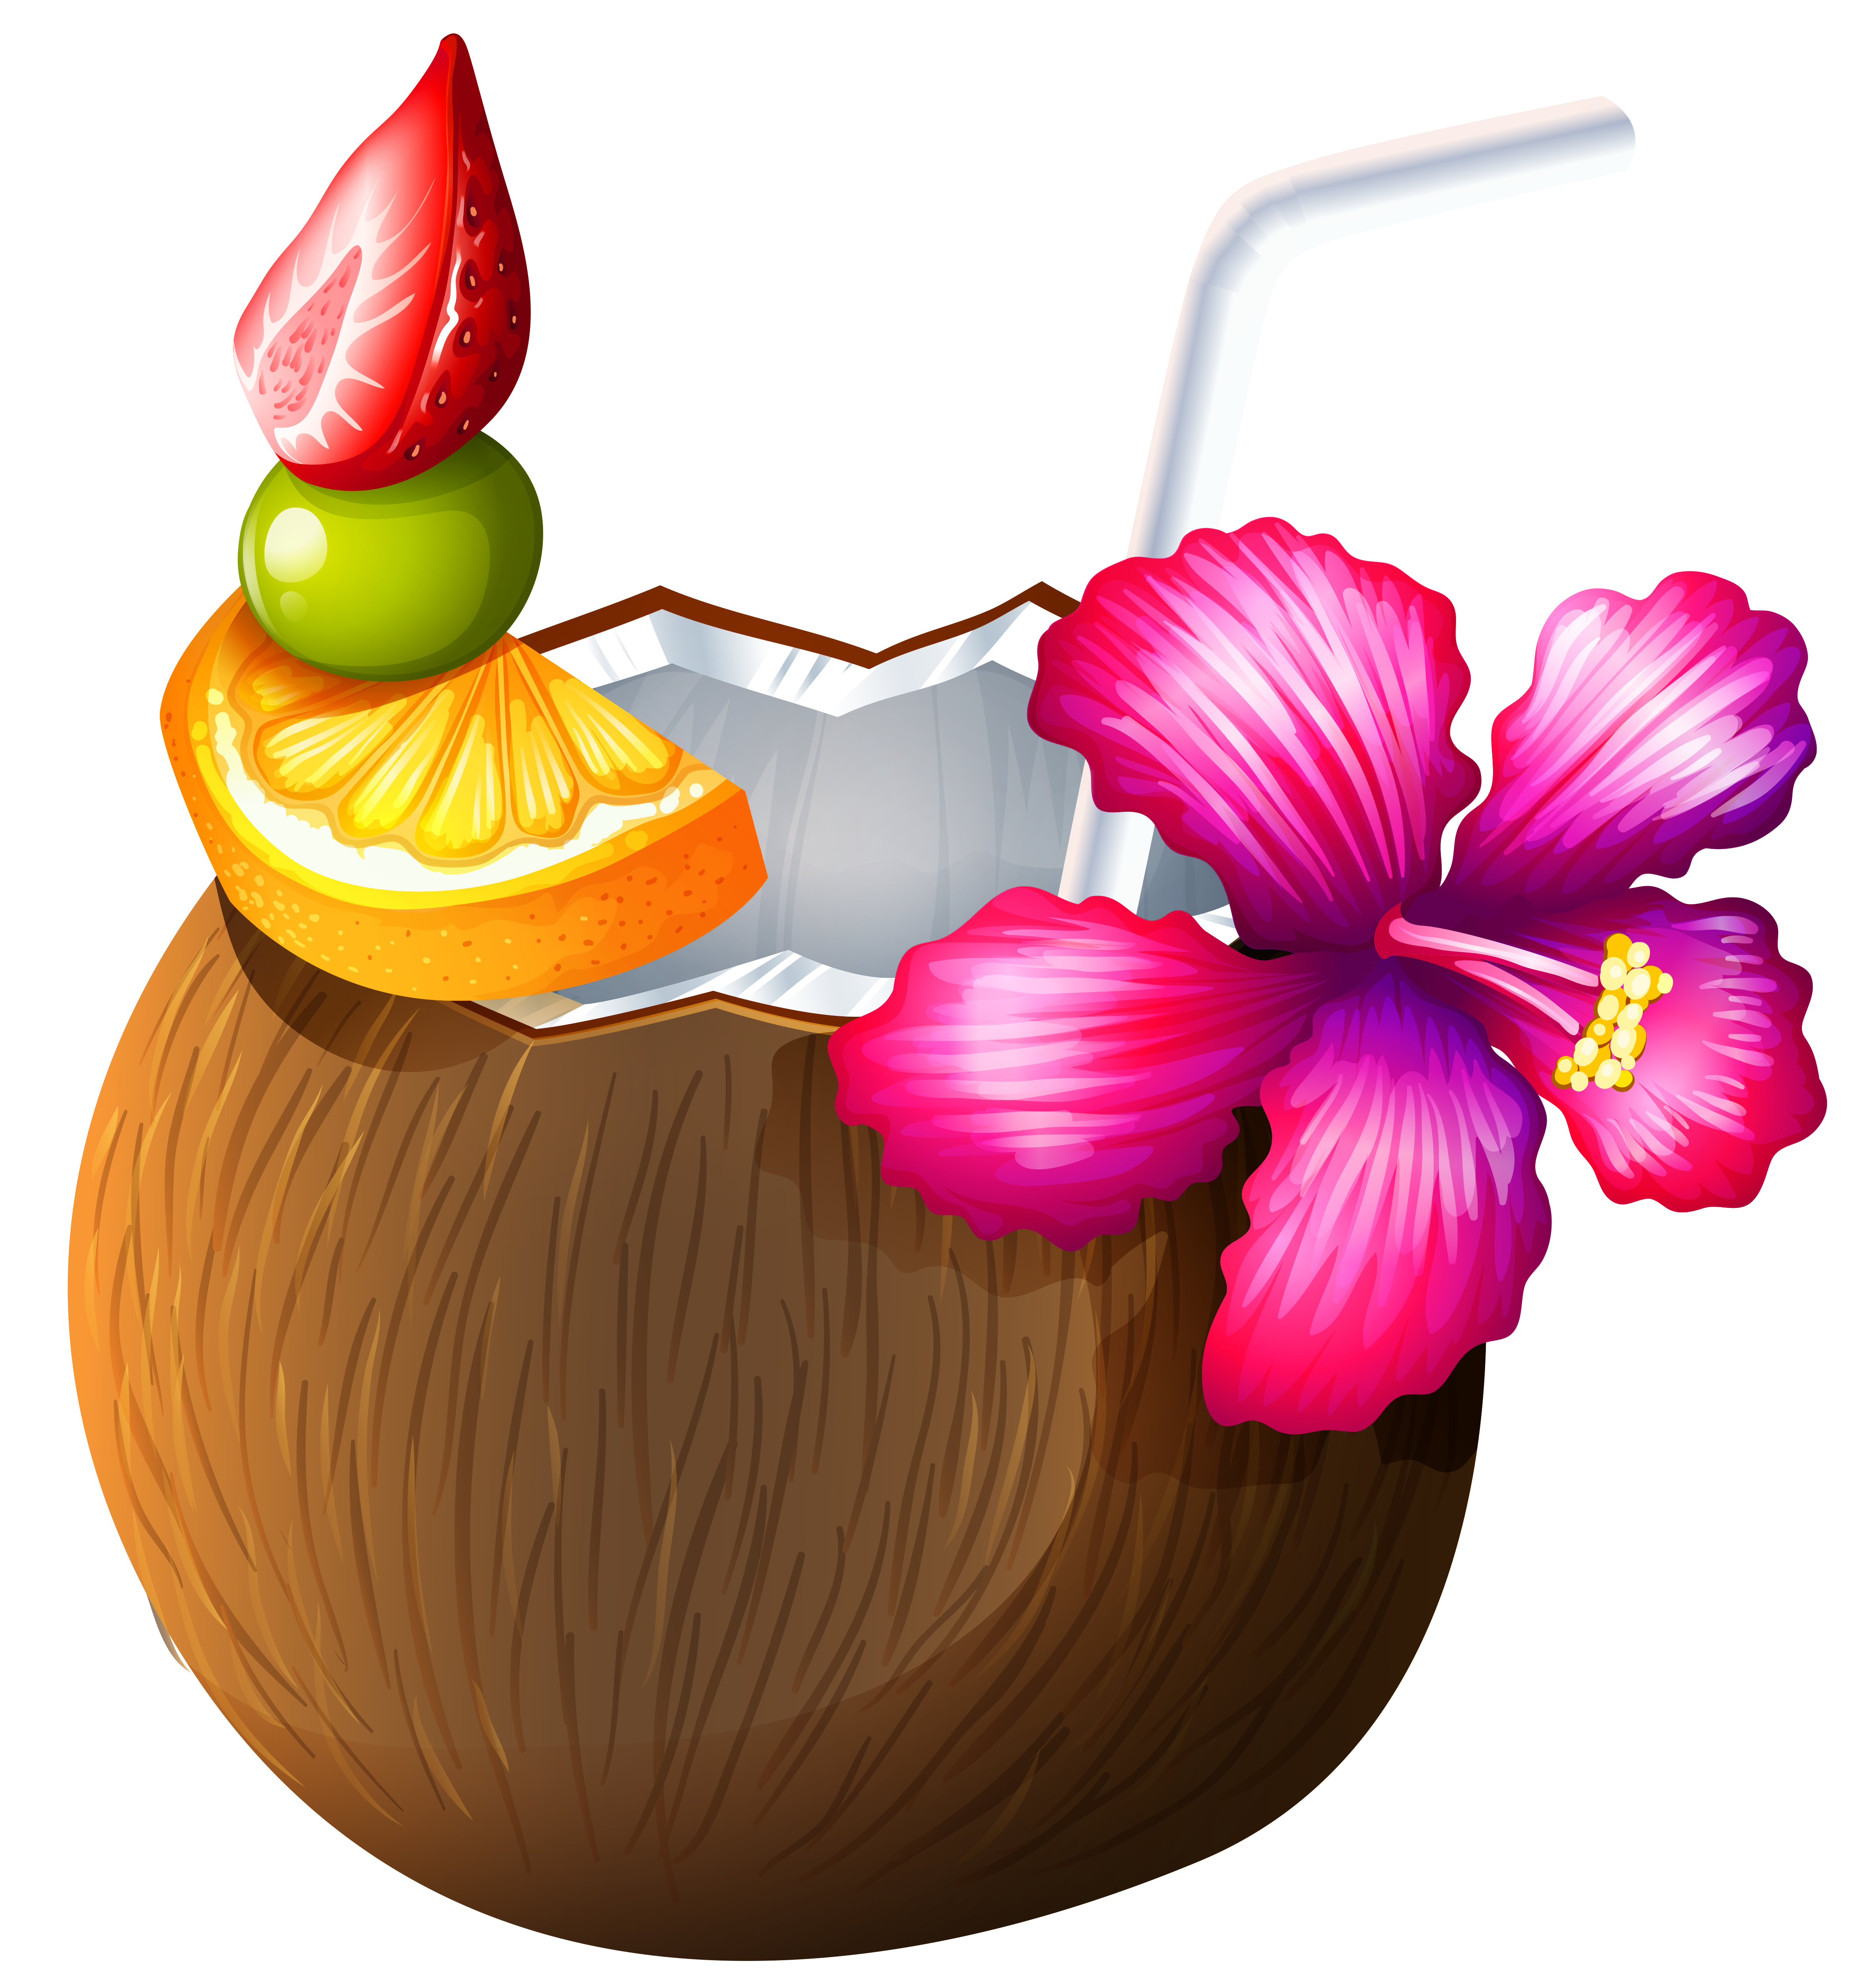 Moana clipart exotic flower. Coconut drink clip art